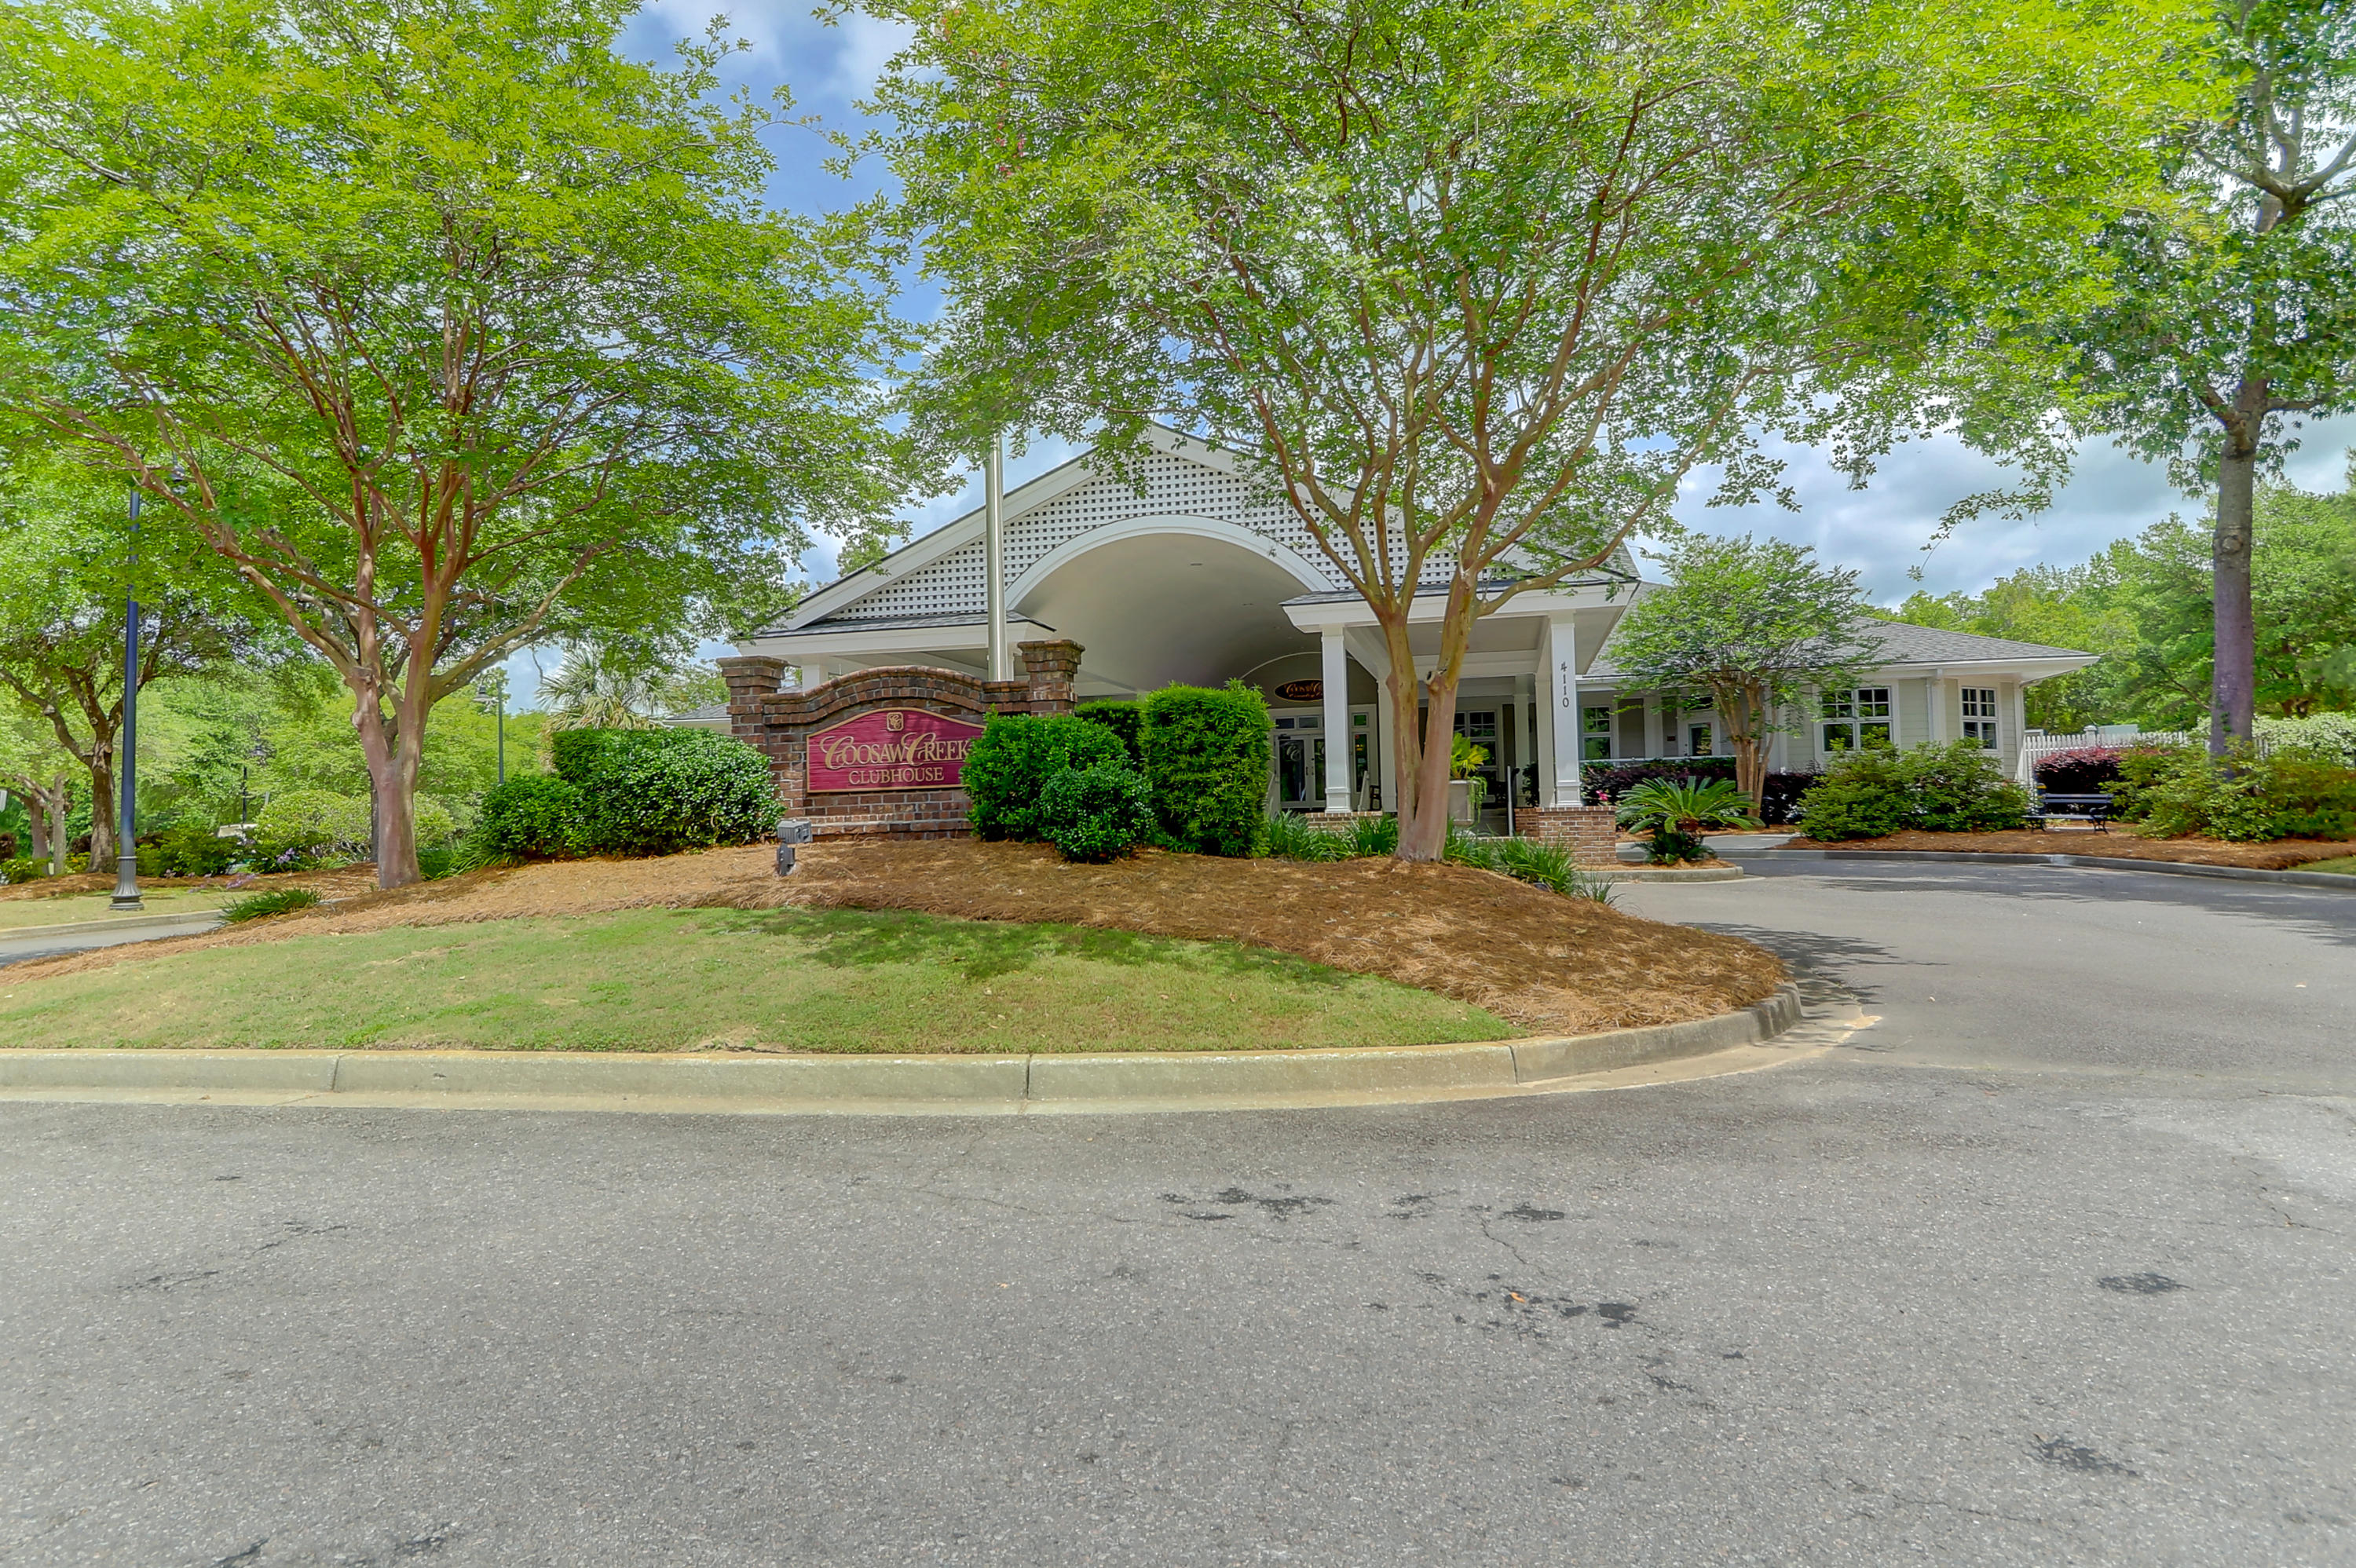 Coosaw Creek Country Club Homes For Sale - 8700 Fairway Woods, North Charleston, SC - 23